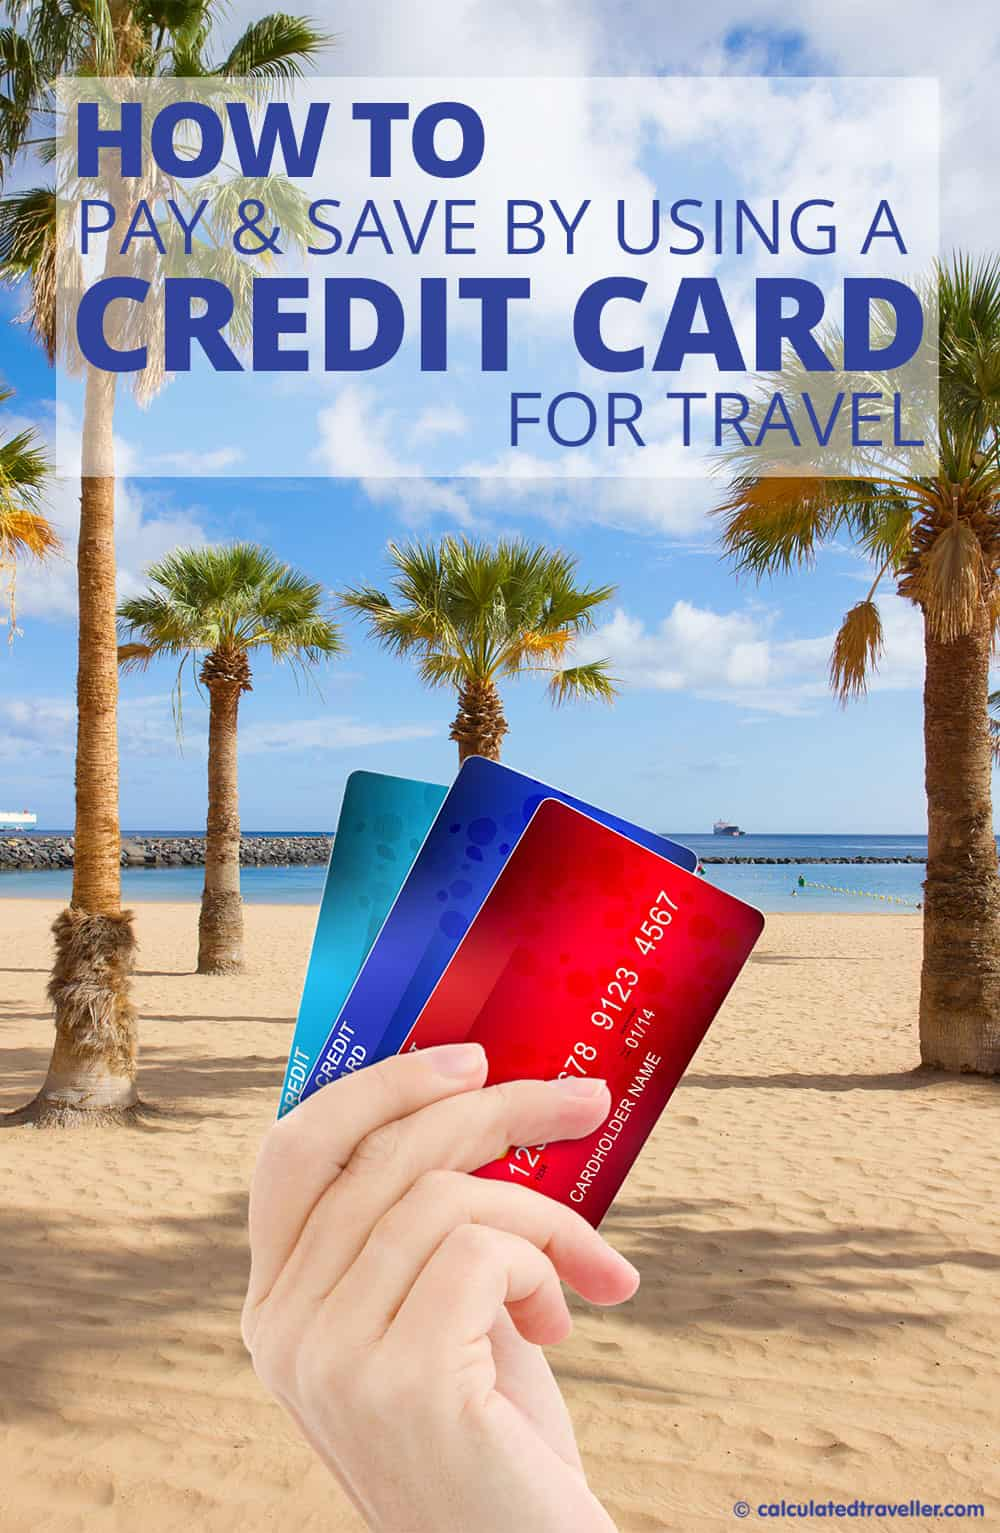 How to Pay and Save by Using your Credit Card for Travel | #travel #creditcard #save #planning #tip #advice